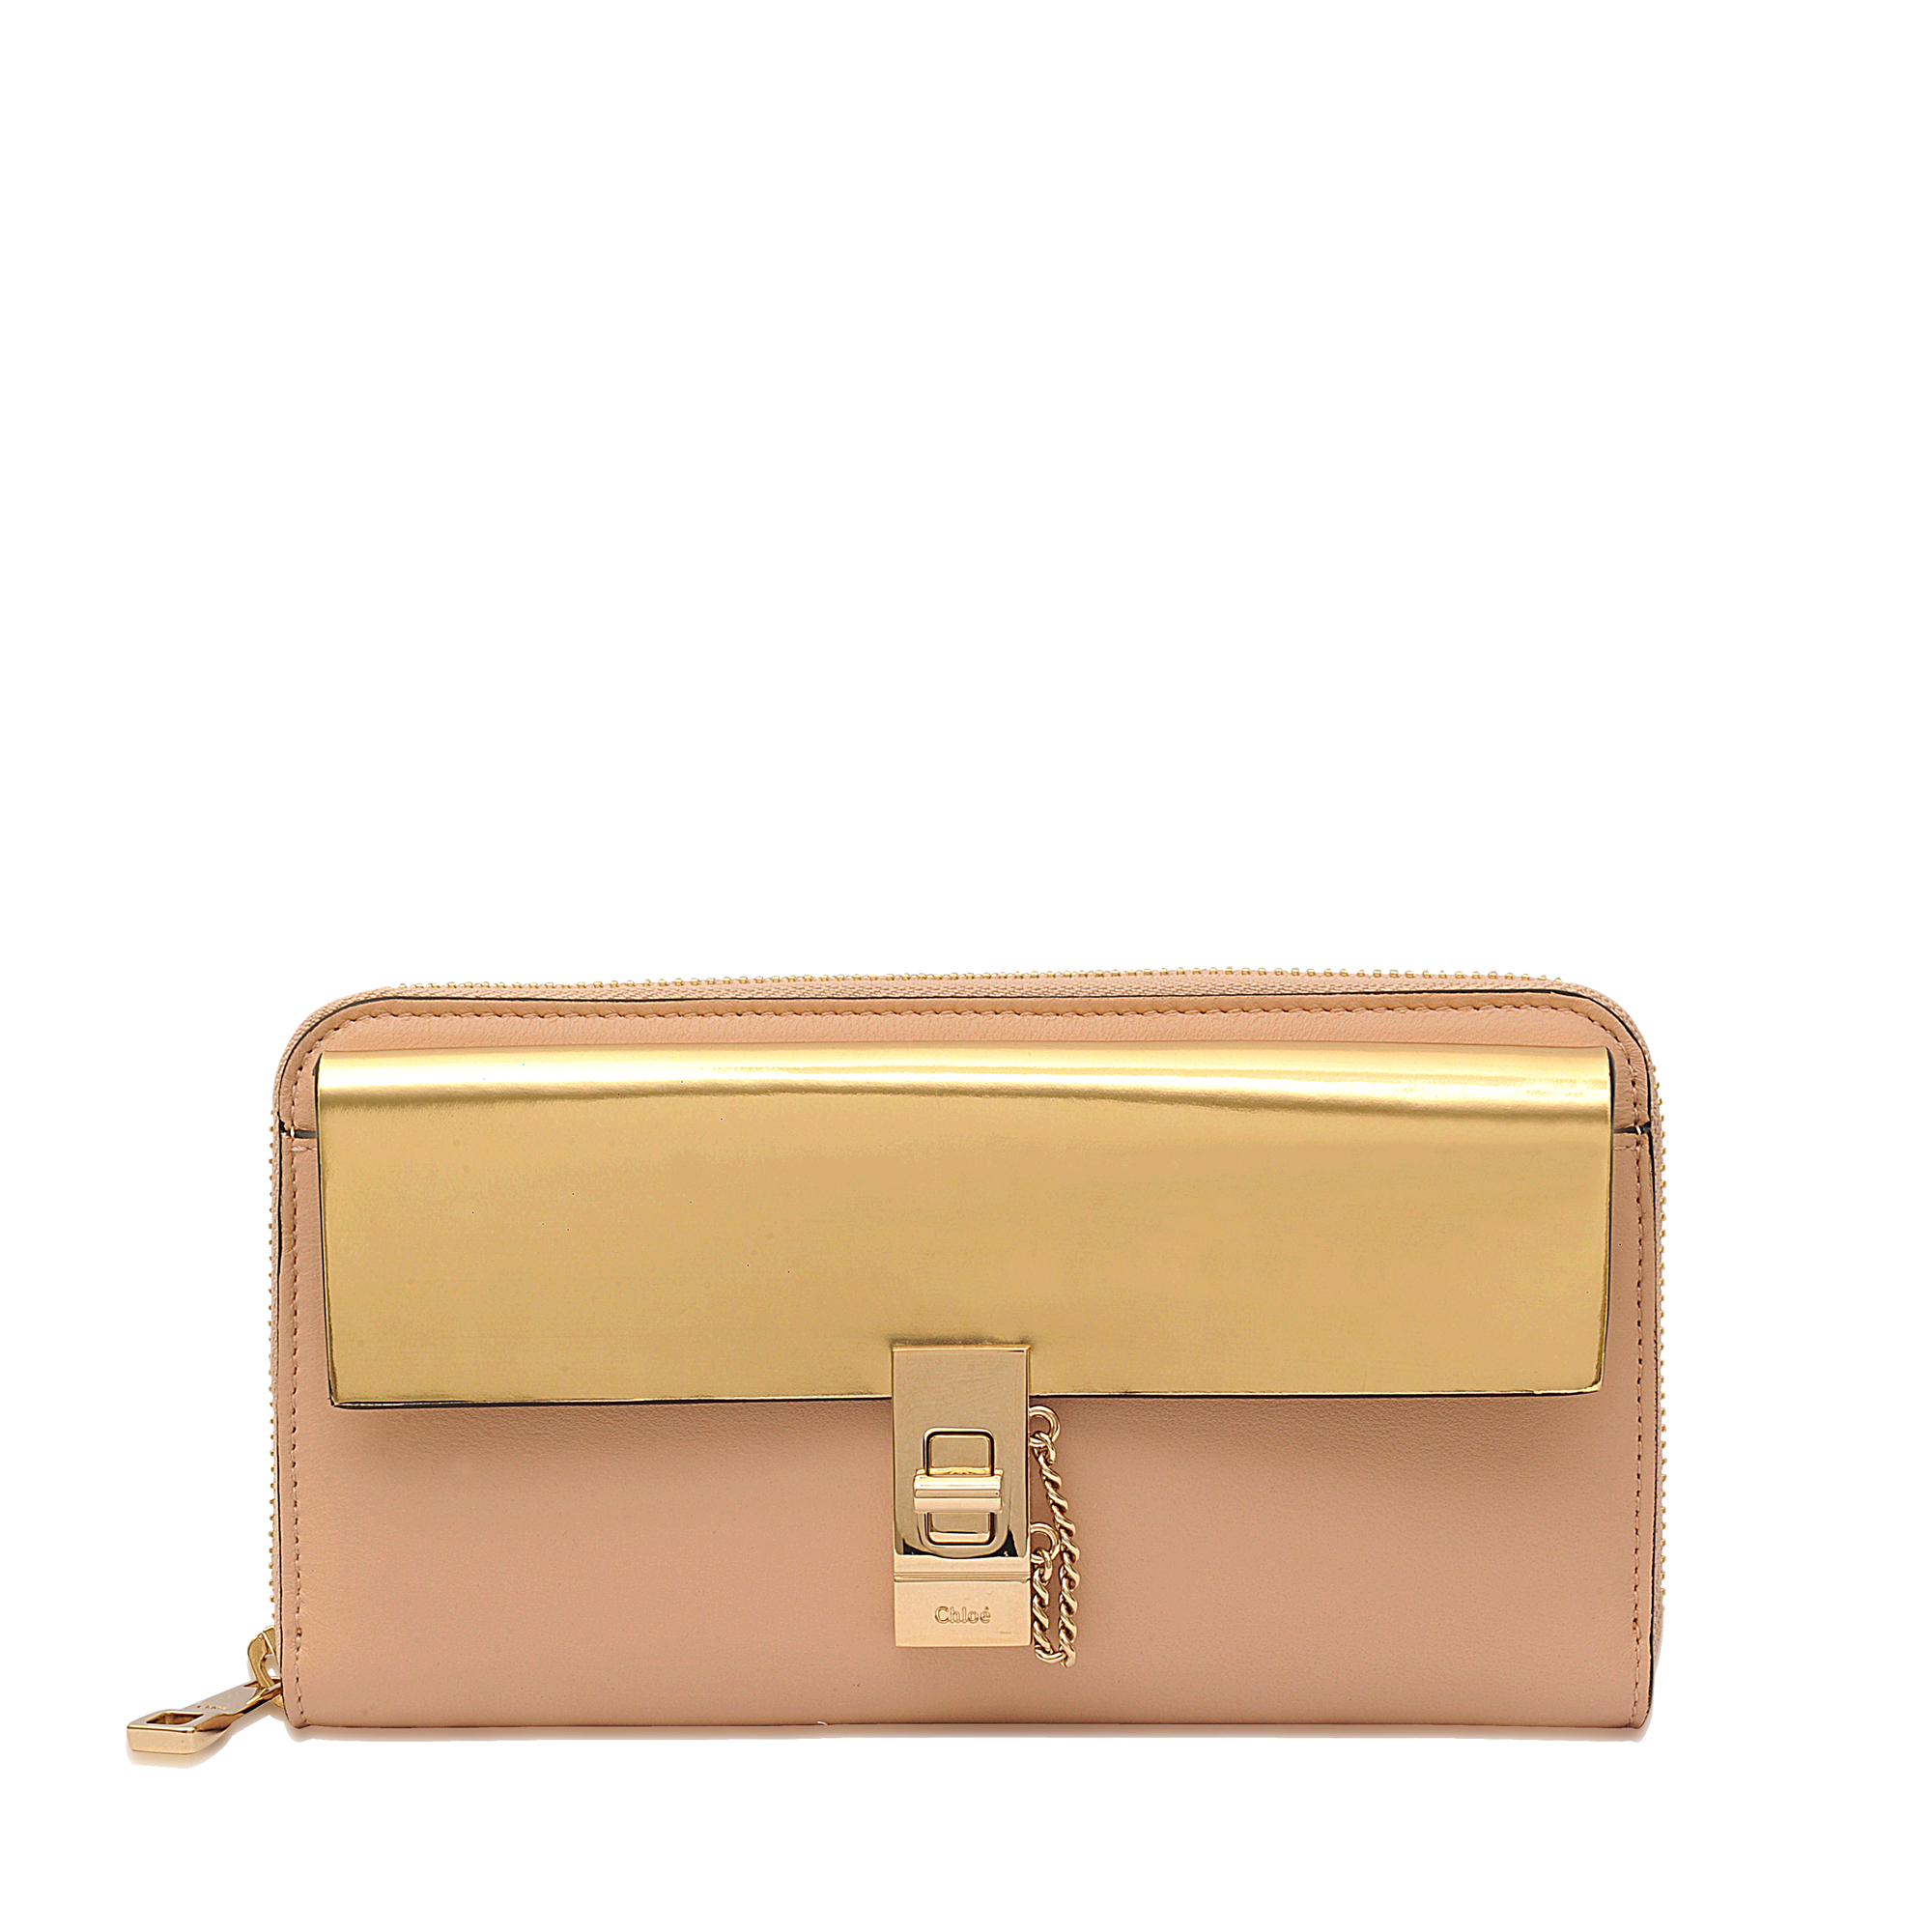 Chlo�� Drew Long Zipped Wallet in Beige | Lyst